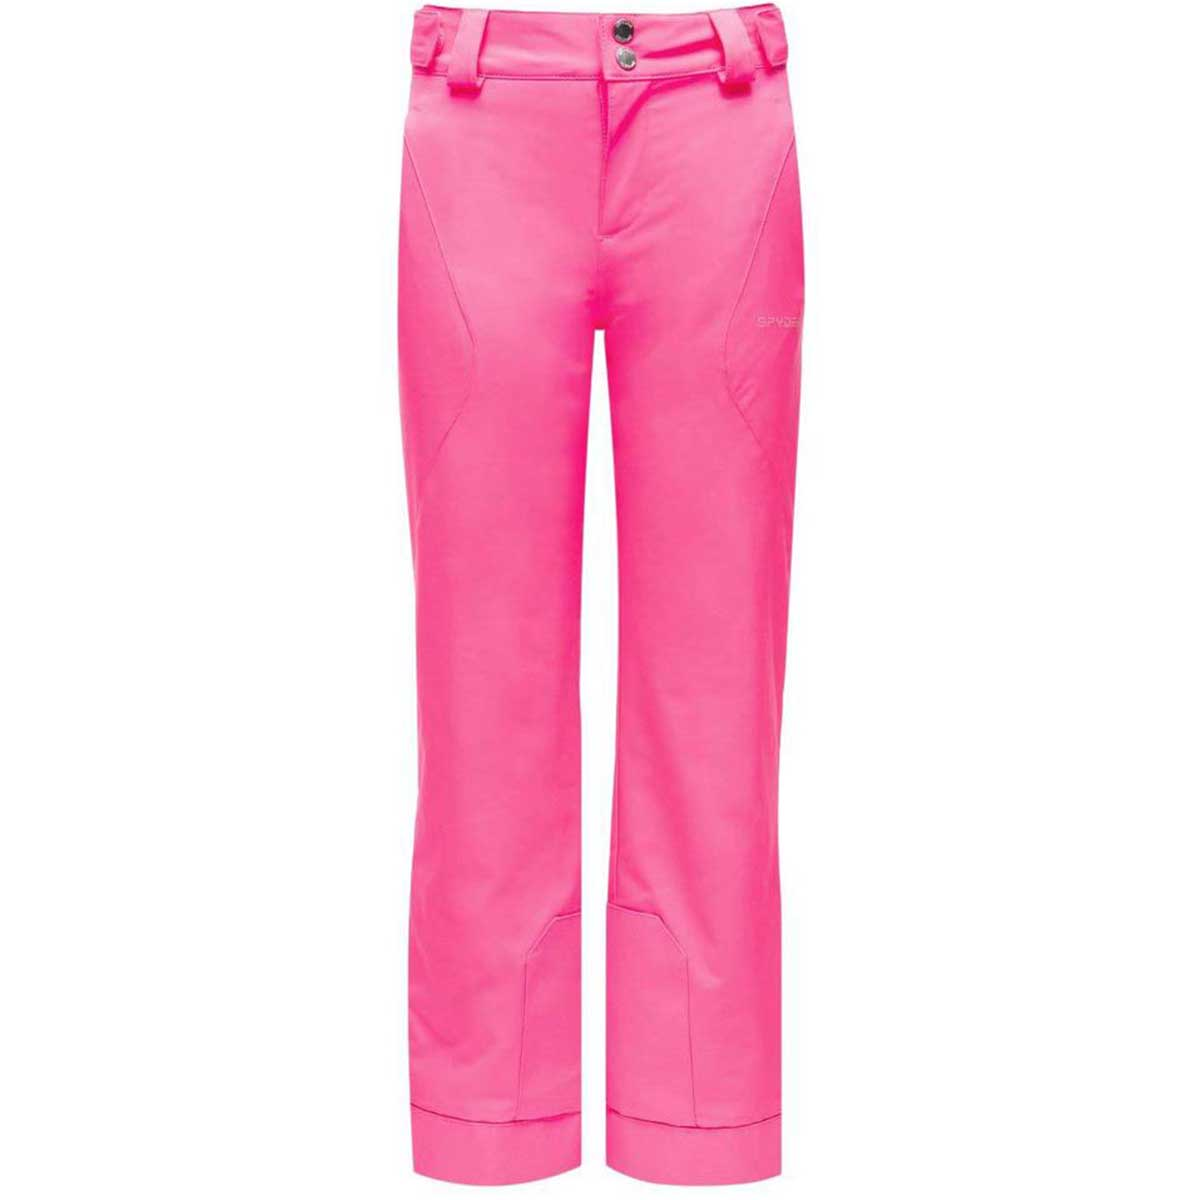 Spyder girls' Olympia Pant in Bryte Bubblegum front view